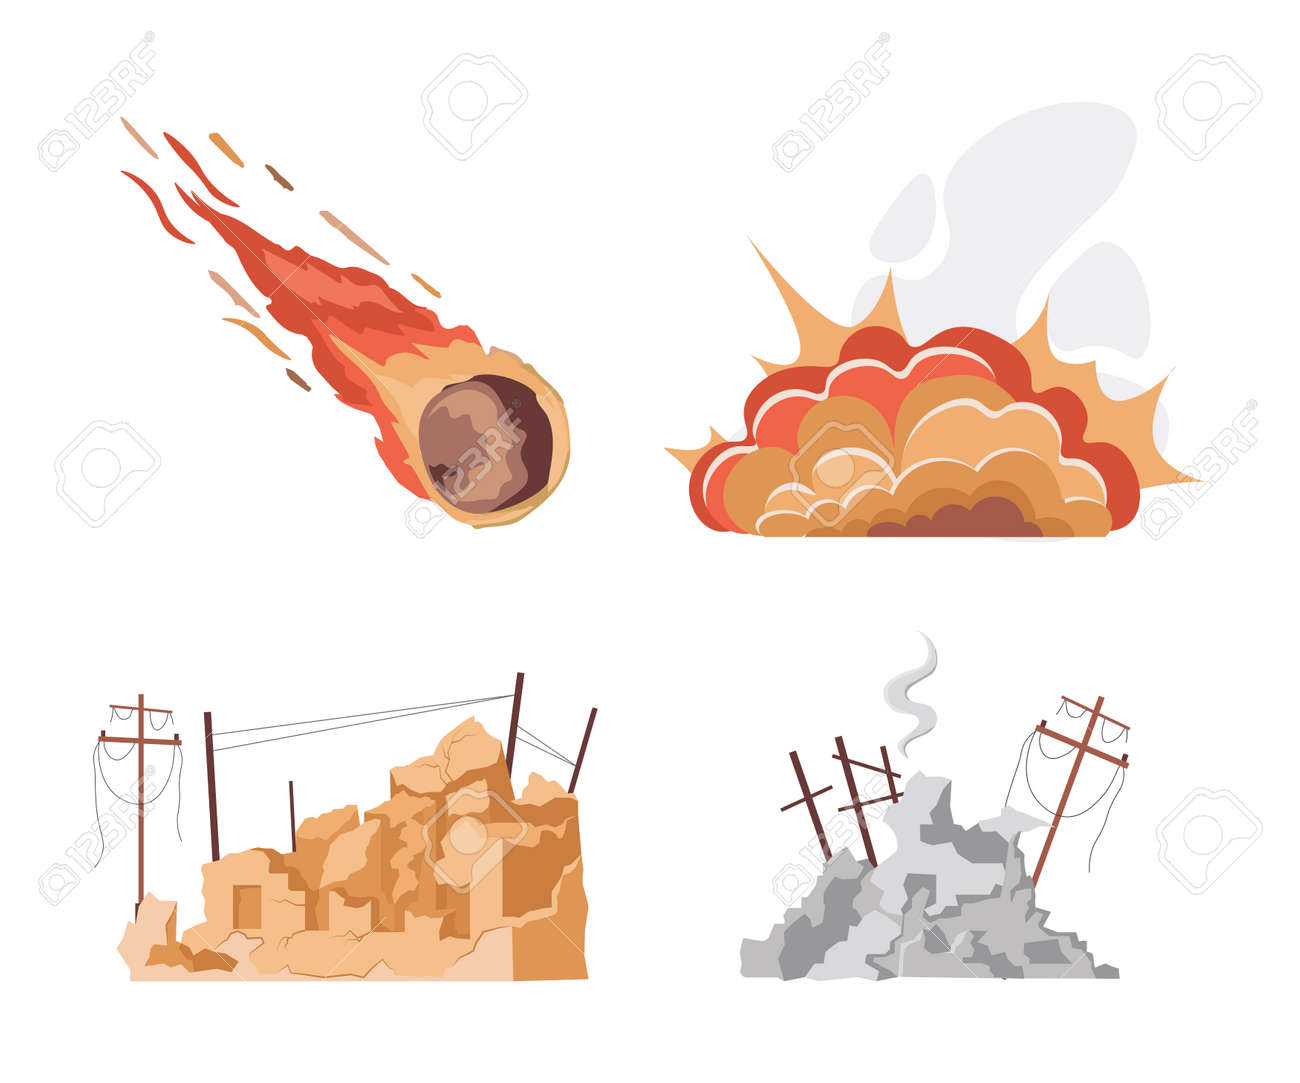 Set of natural disaster vector flat illustrations isolated on white background. World in collapse concept. - 173869148